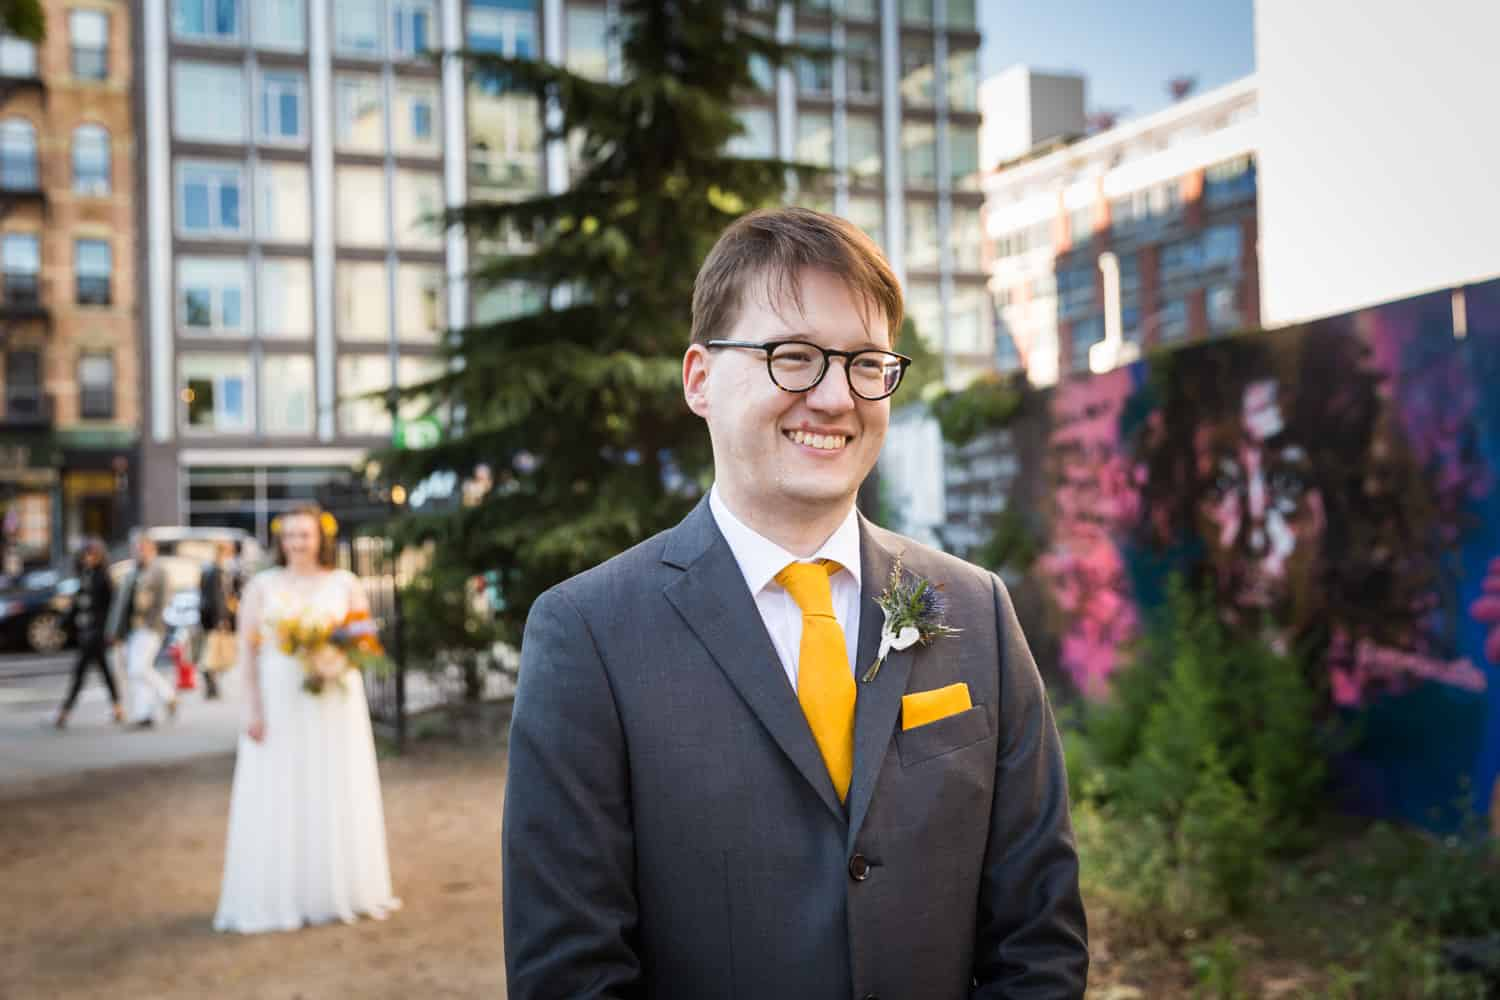 Groom waiting for first look to begin with bride